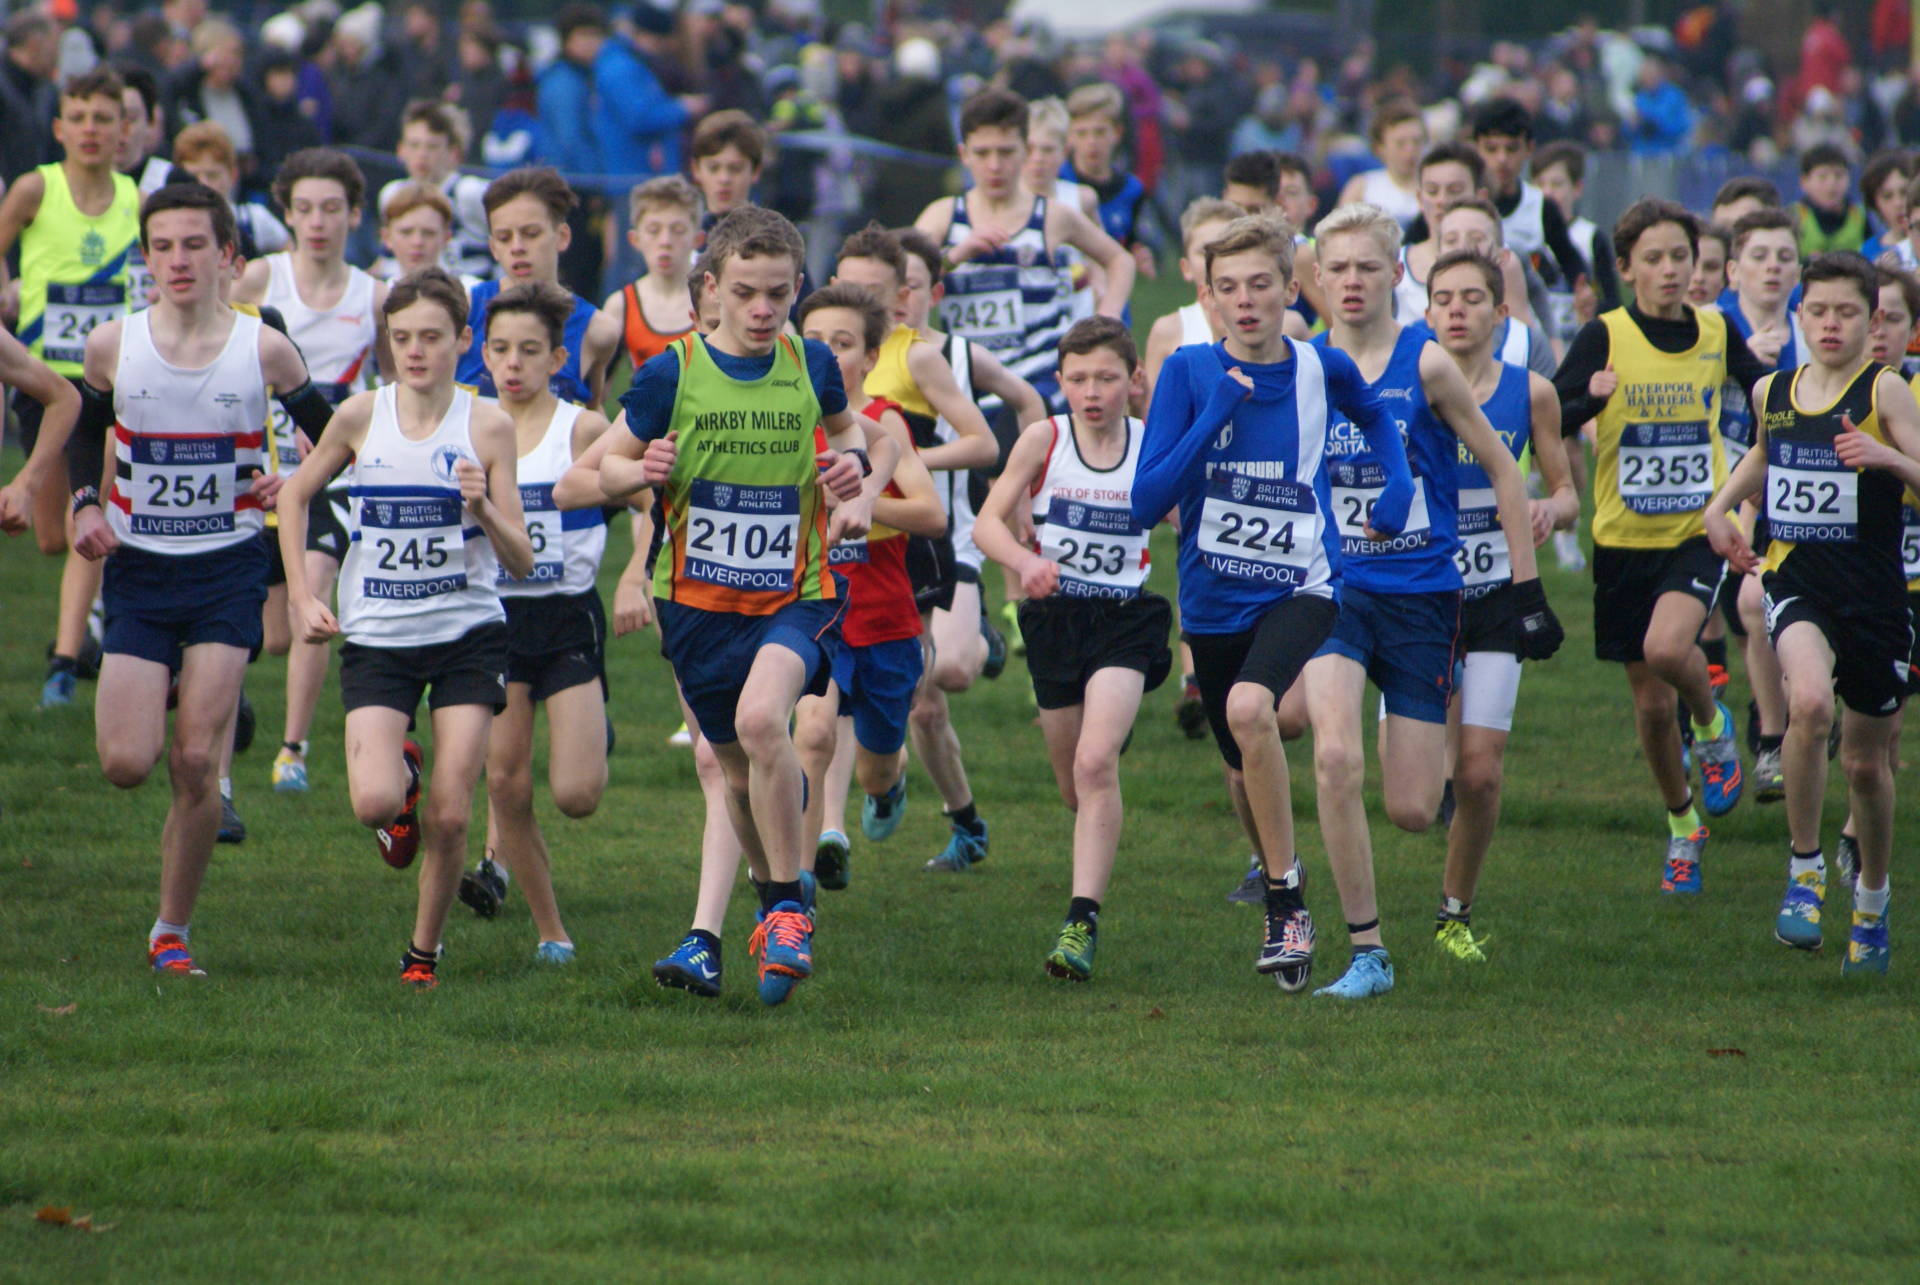 Cross Challenge & Mid Lancs with the Harriers – 2nd for Jack at David Staff Race – Top 20 for Jacob at Wilmslow 10k – Zach Medals & Saul sets PB at British Biathlon Championships